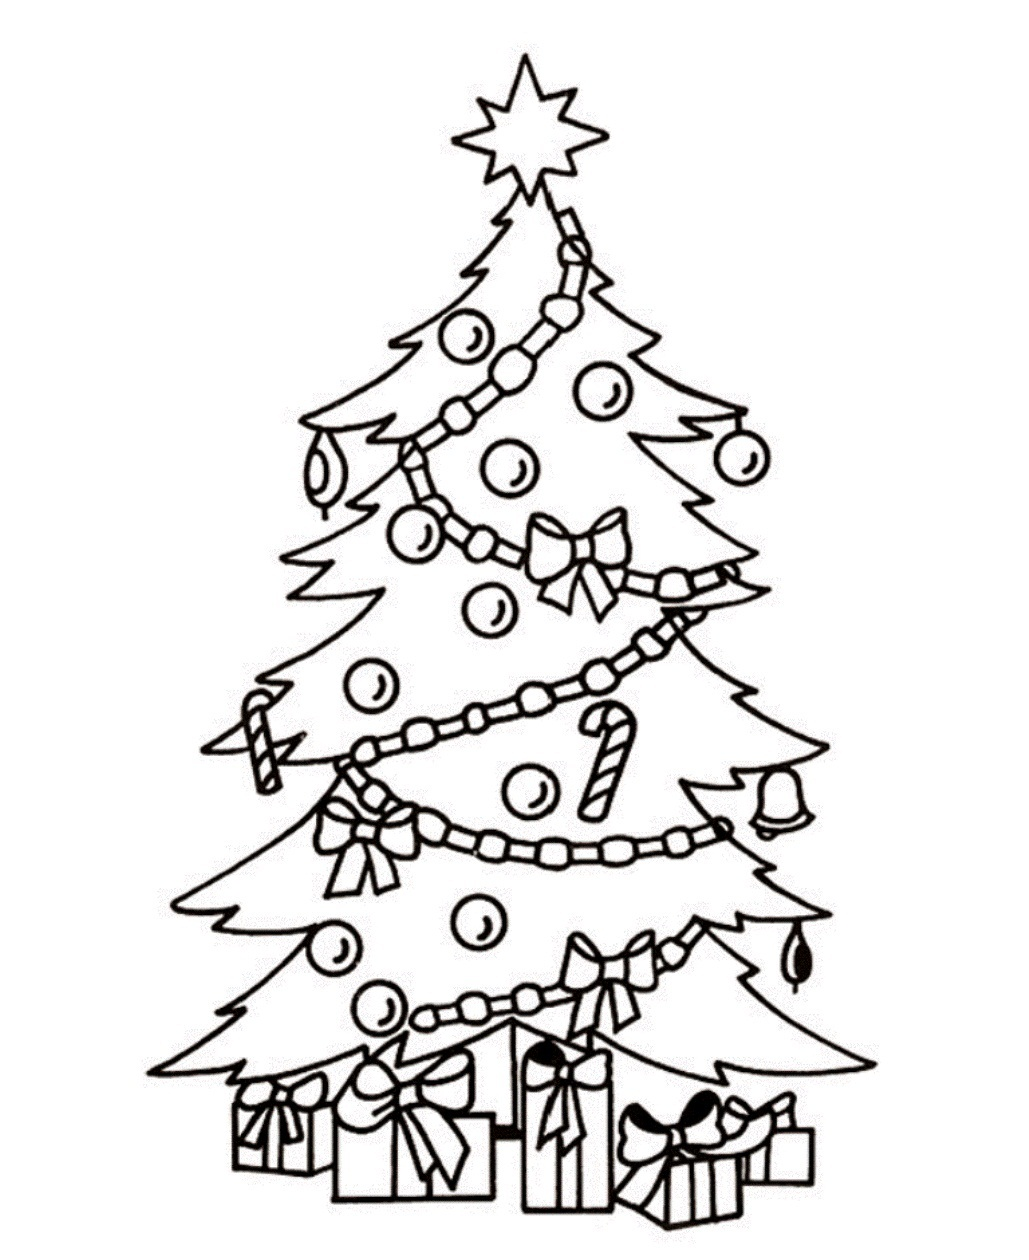 Presents Coloring Pages